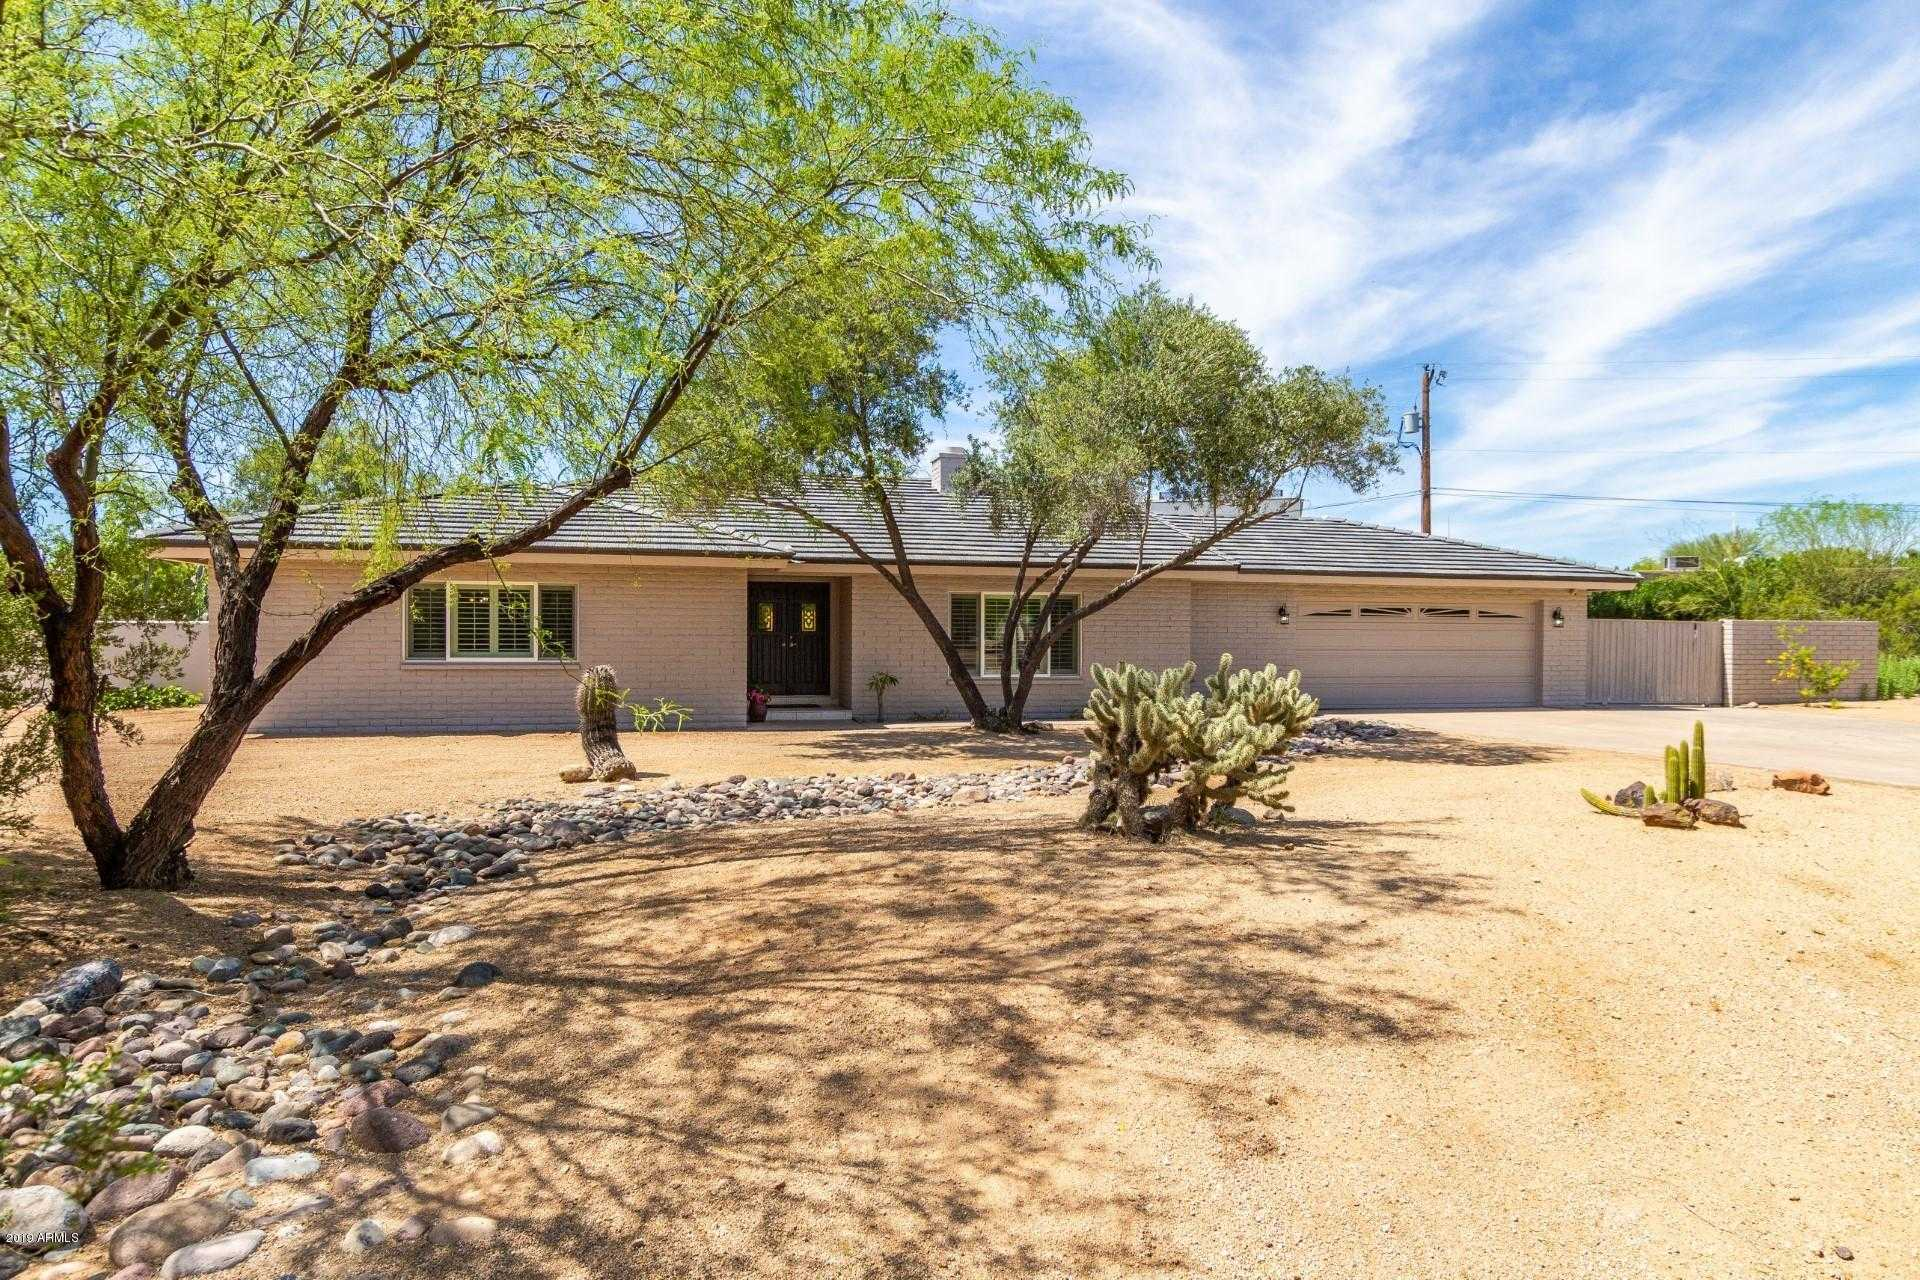 $750,000 - 4Br/3Ba - Home for Sale in Metes And Bounds, Paradise Valley